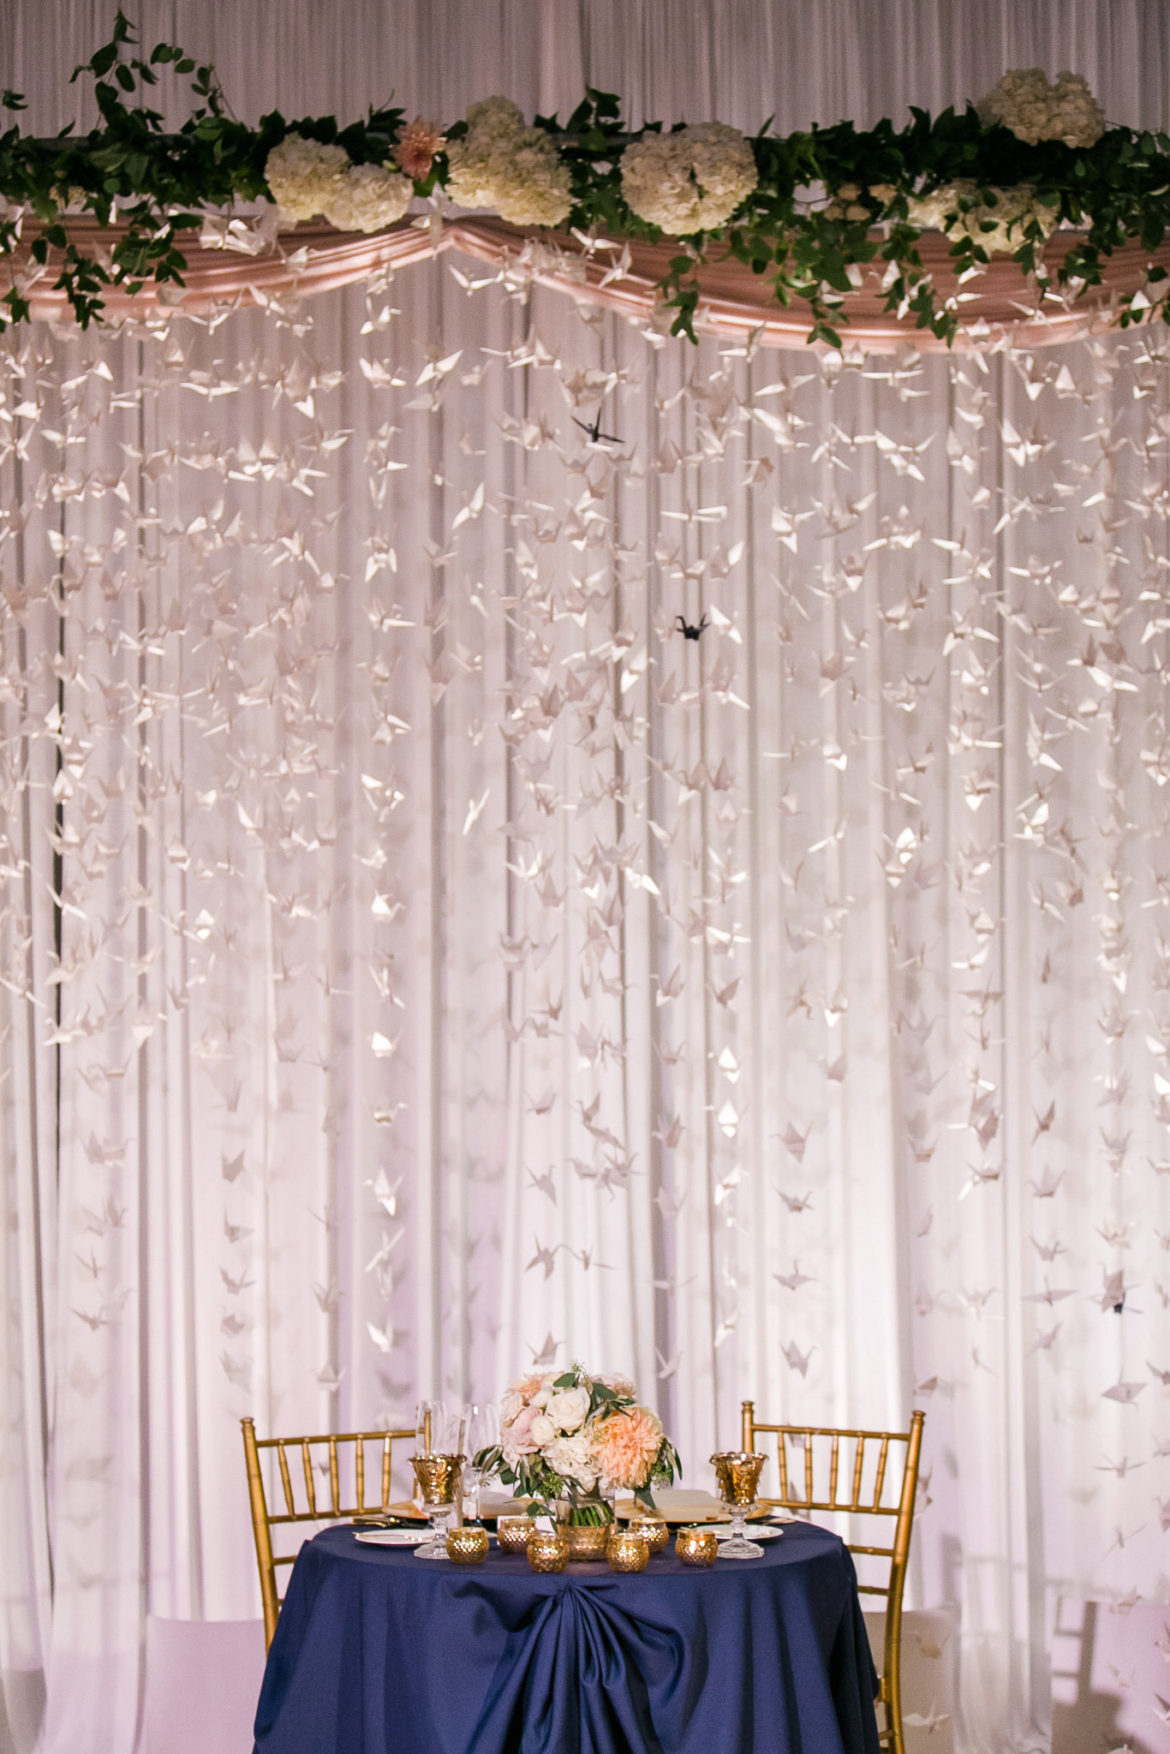 Elegant_Event_Lighting_Chicago_Art_Institute_Griffin_Court_Wedding_Sweetheart_Table_Backdrop_Cranes_Blush_Pink_White